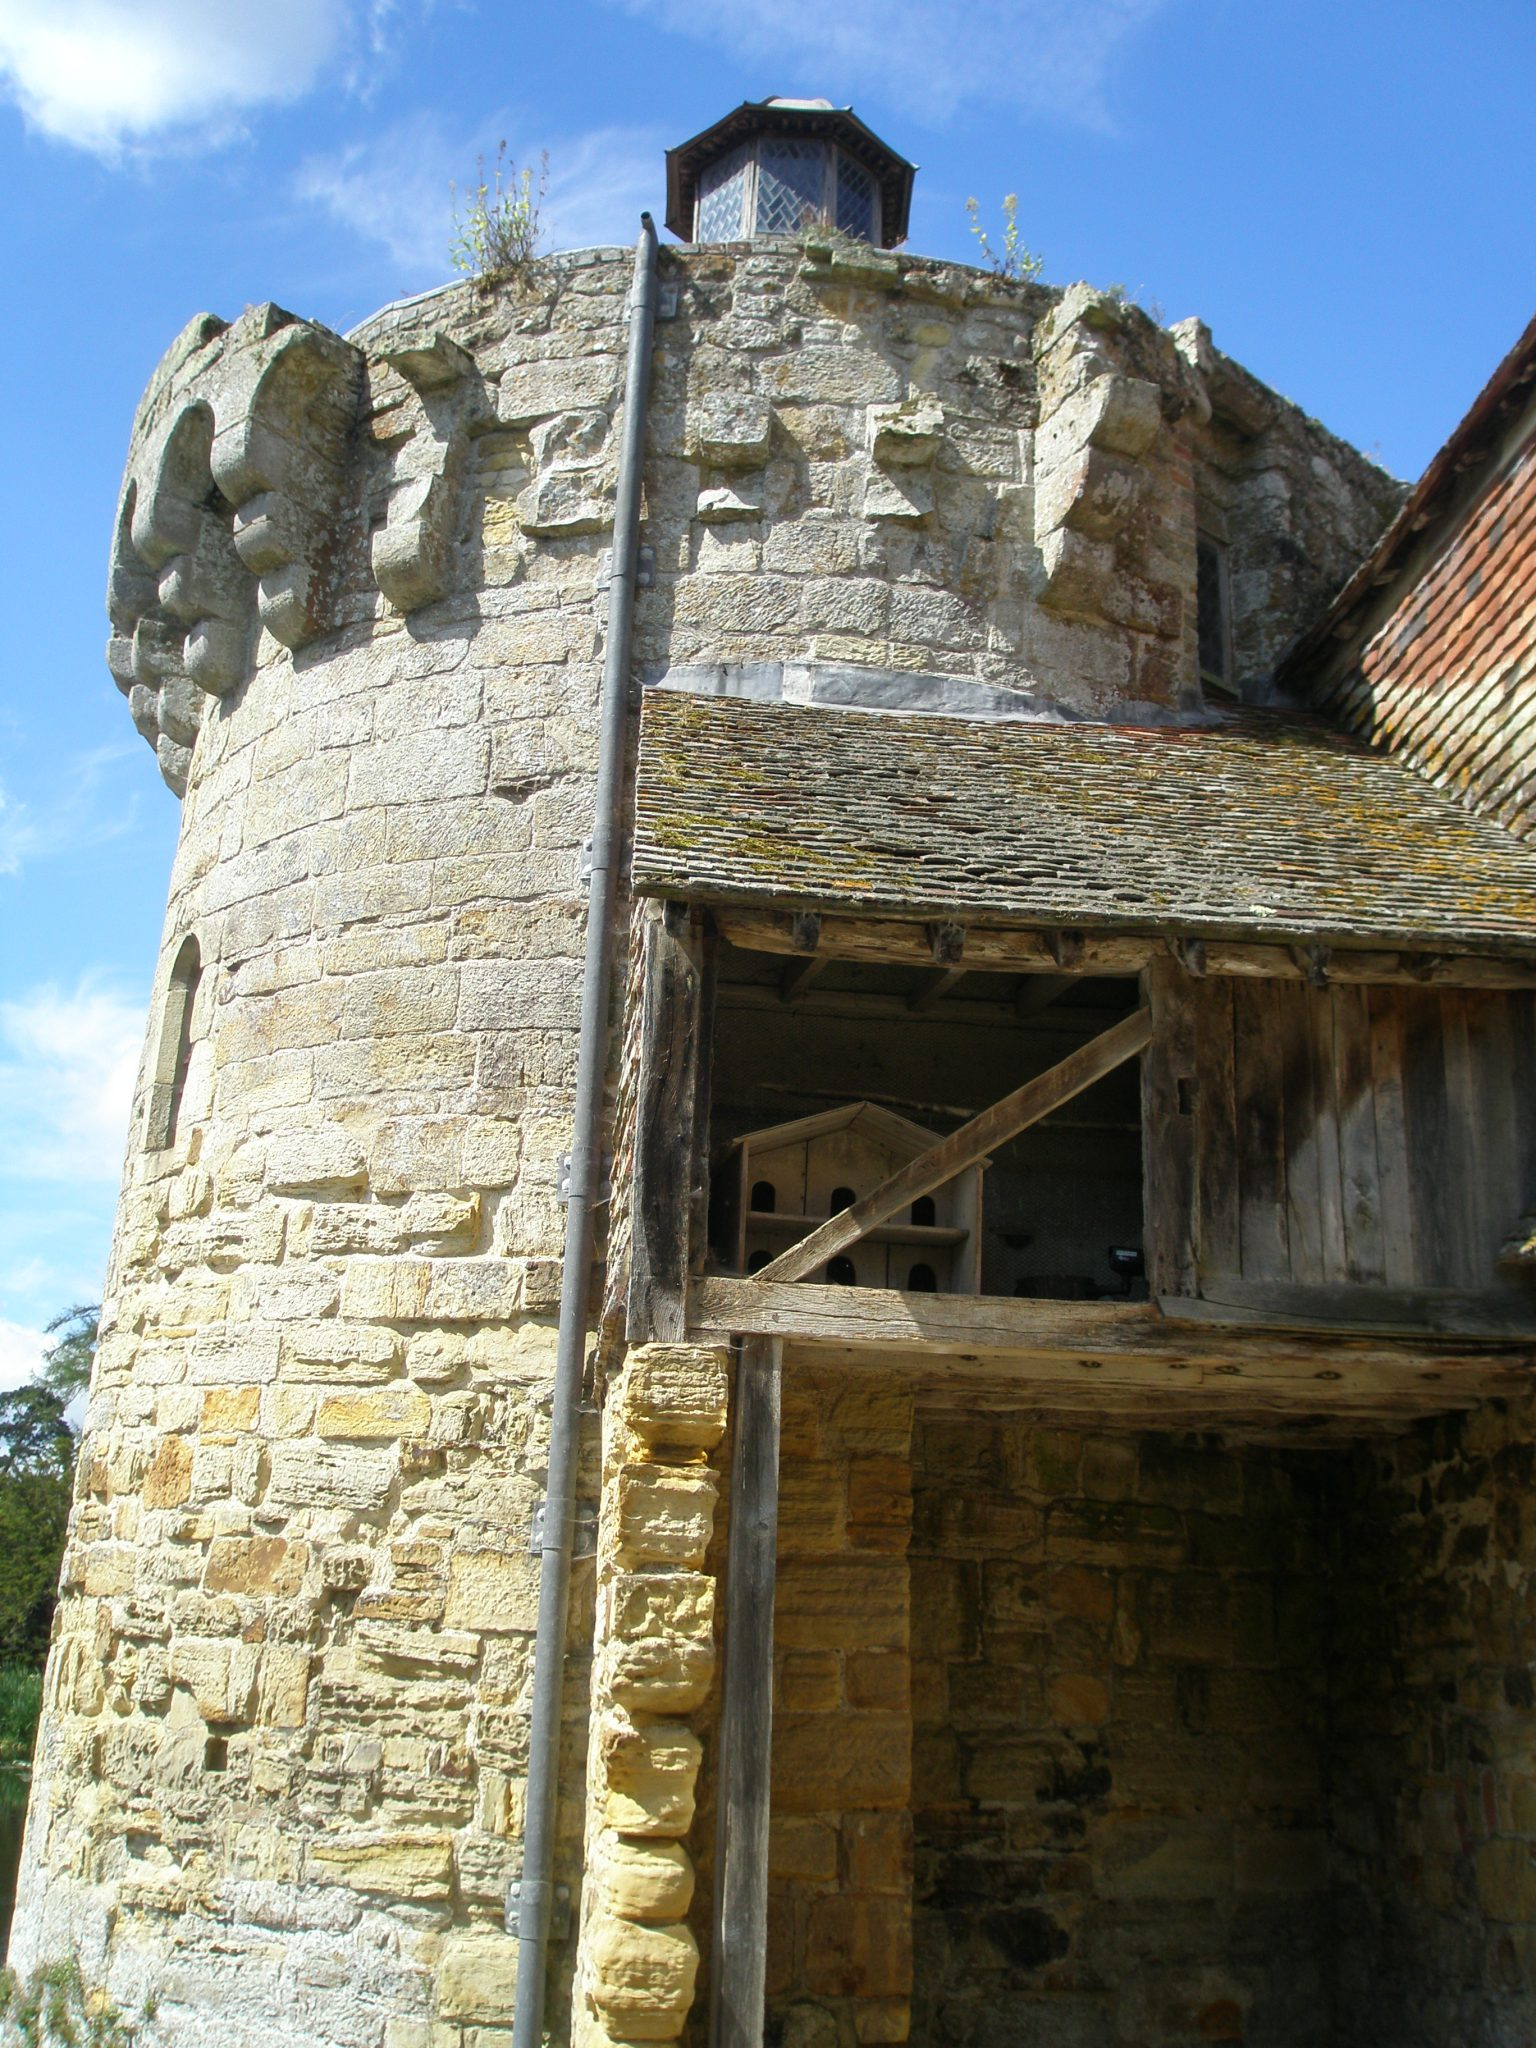 Dovecote behind the 14th century tower of the Old Castle